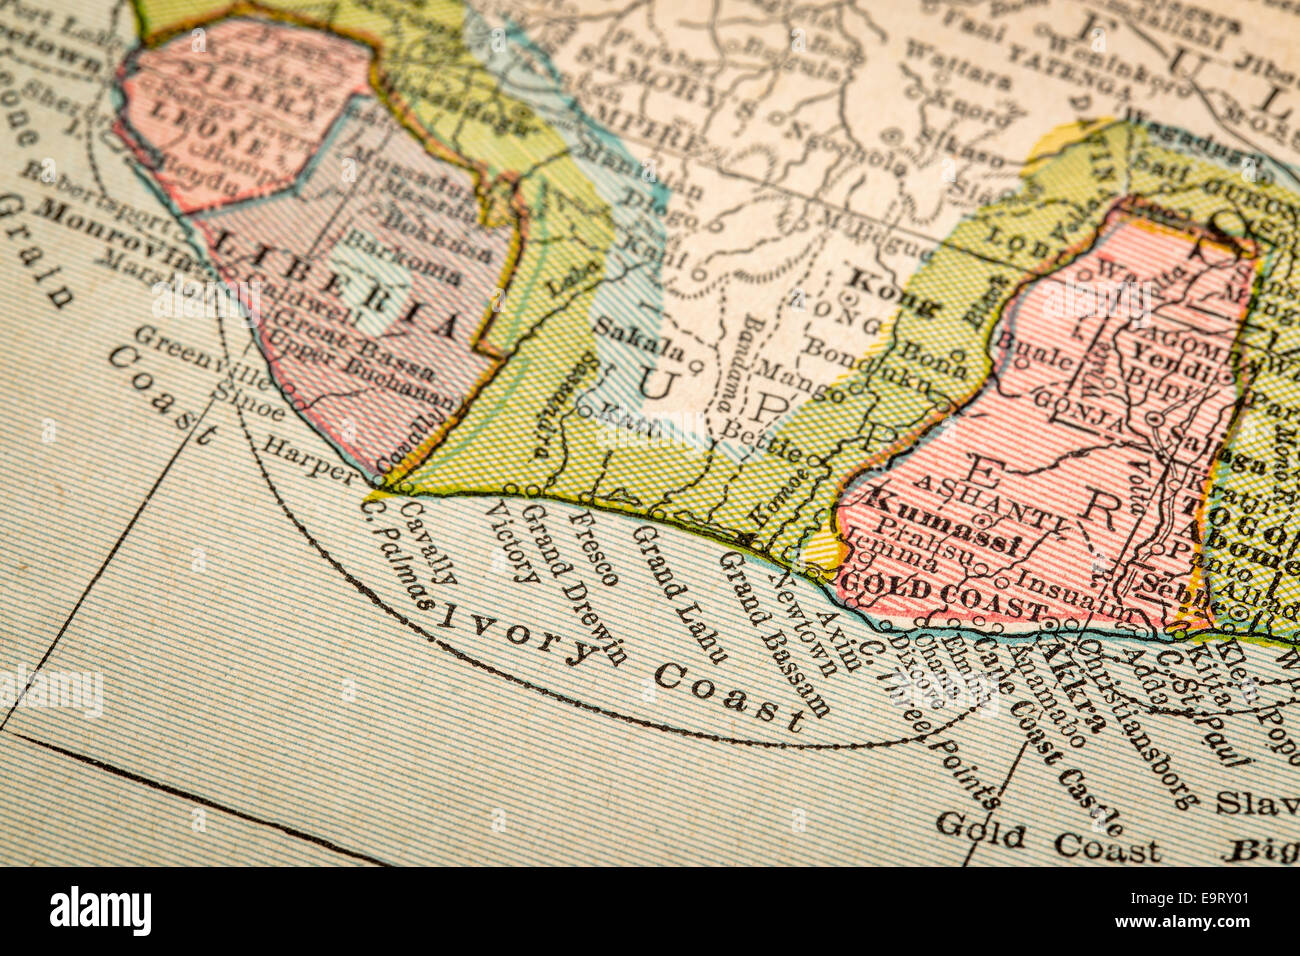 Map Of Coast Of Africa Stock Photos Map Of Coast Of Africa Stock